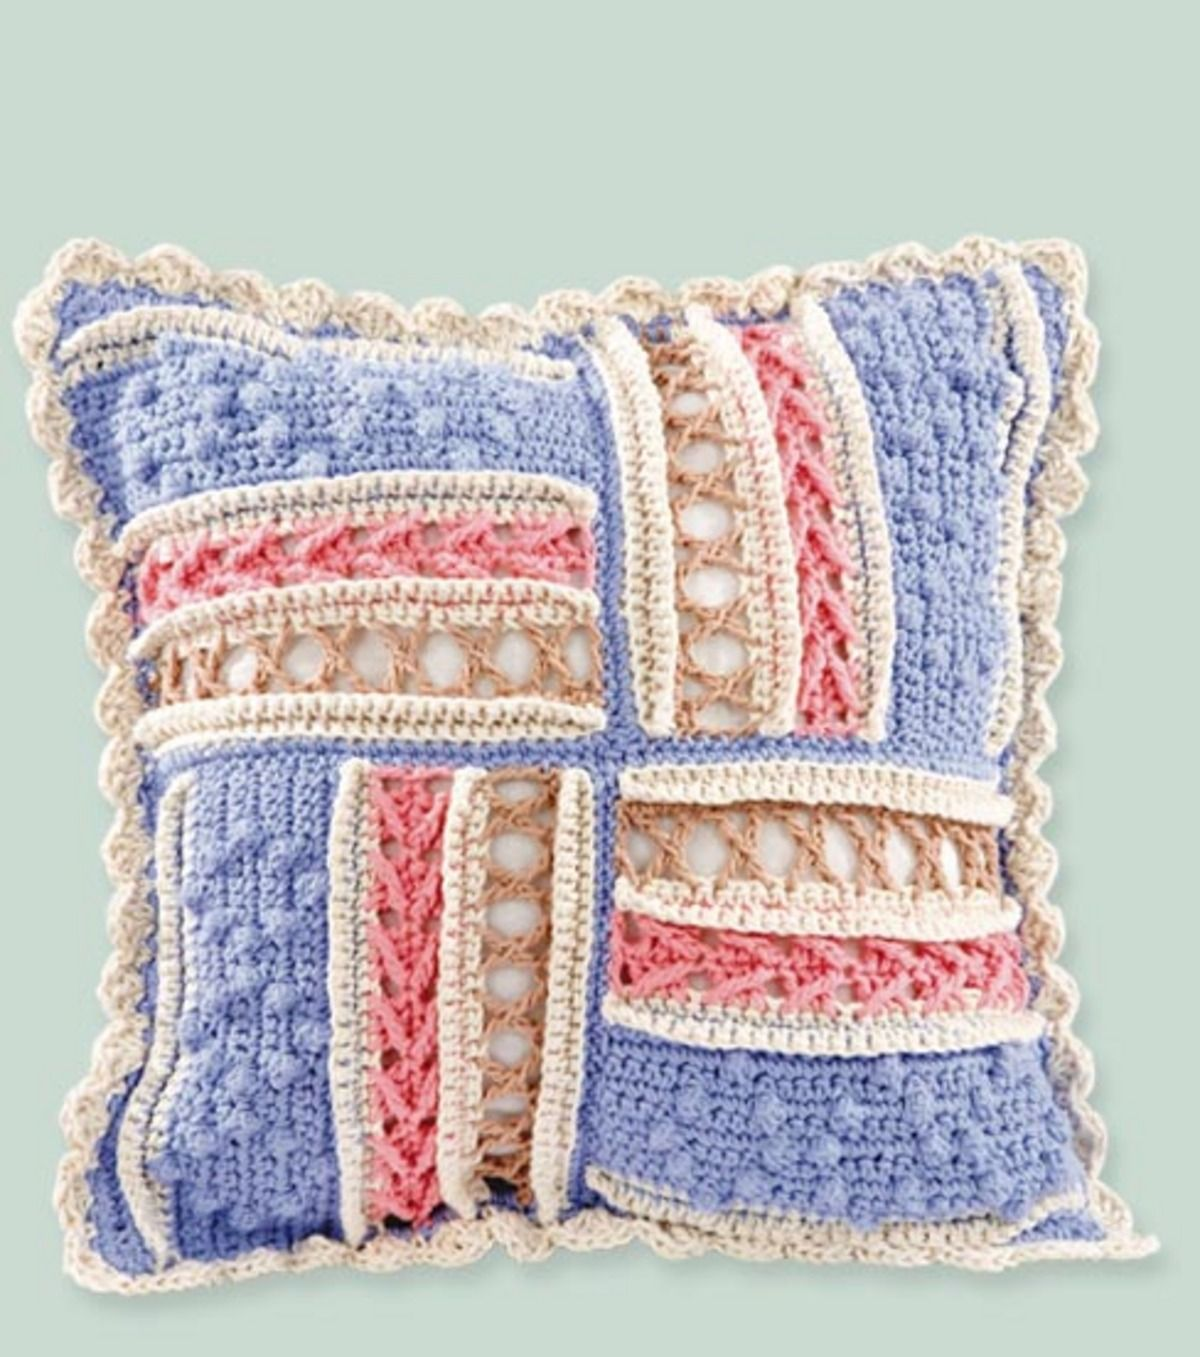 Crochet parquet pillow cover by lily sugarn cream free crochet crochet parquet pillow cover by lily sugarn cream free crochet pattern bankloansurffo Images